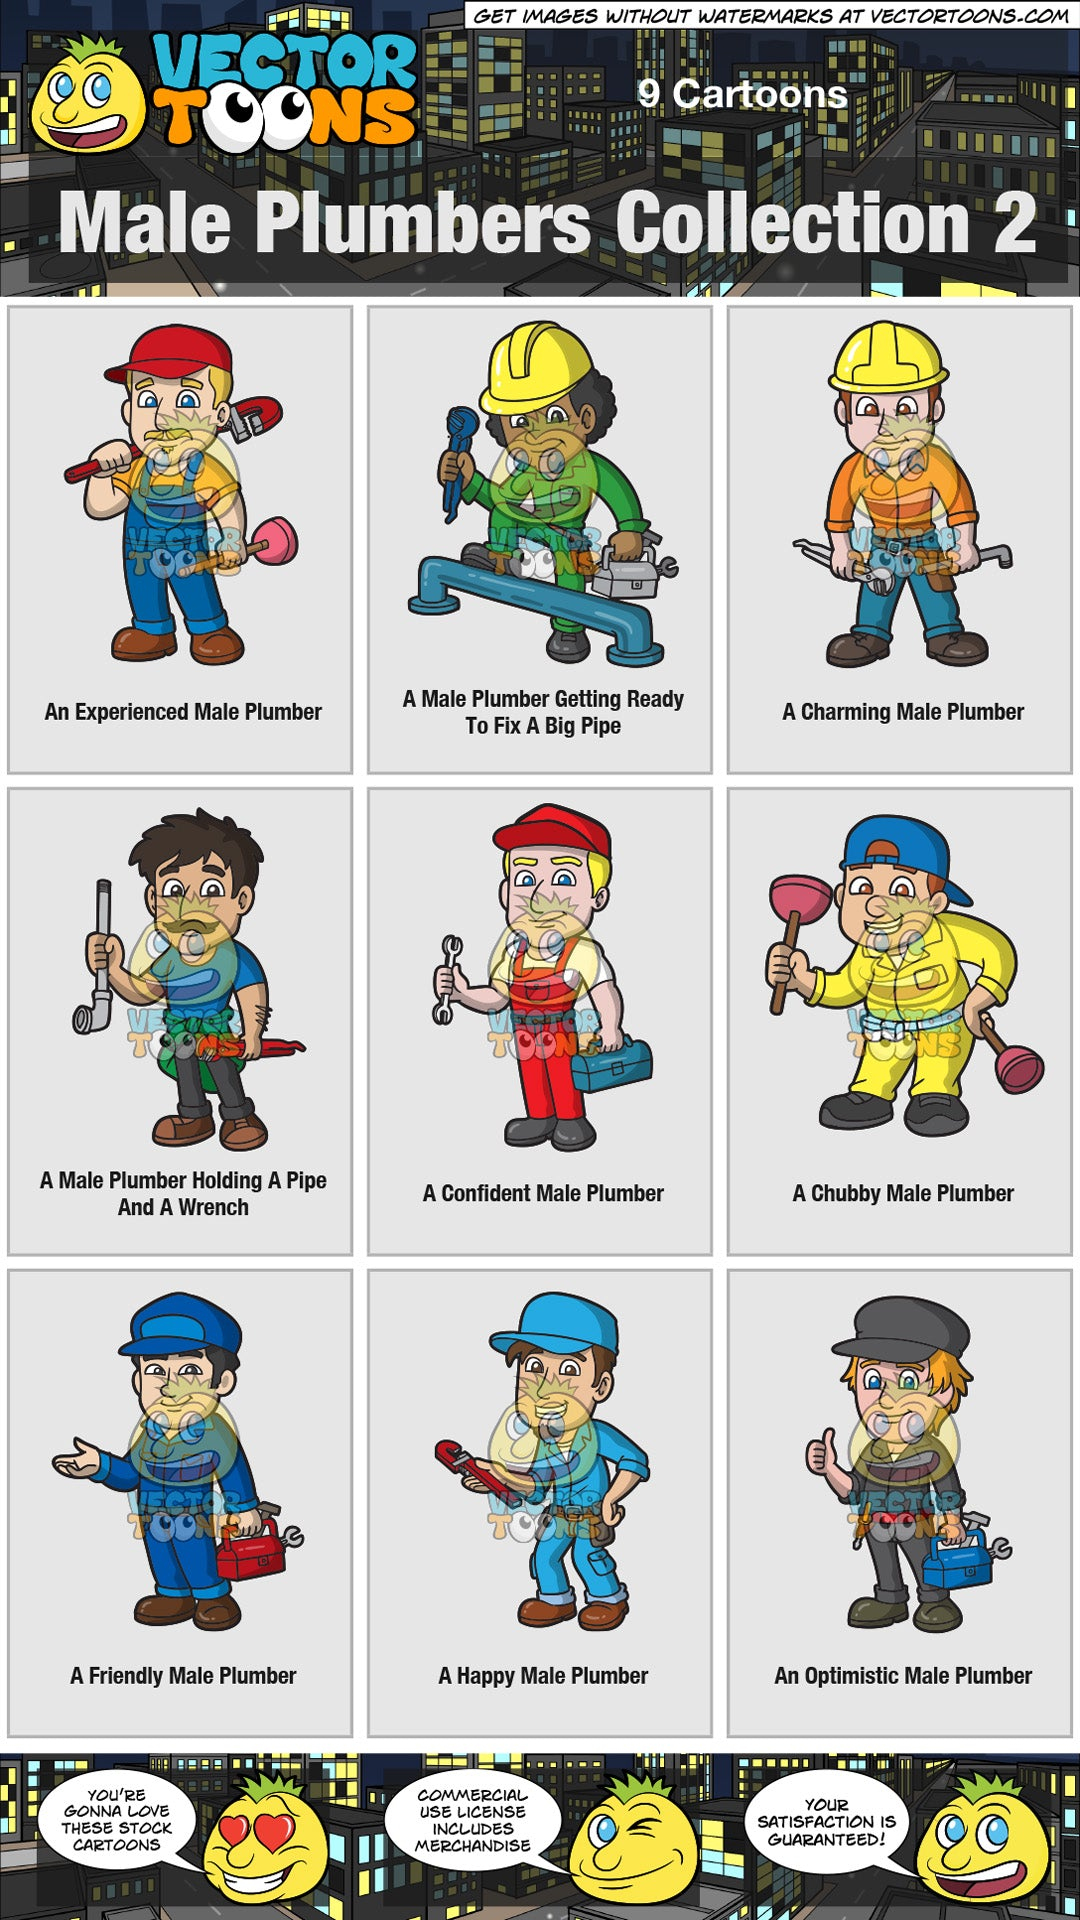 Male Plumbers Collection 2